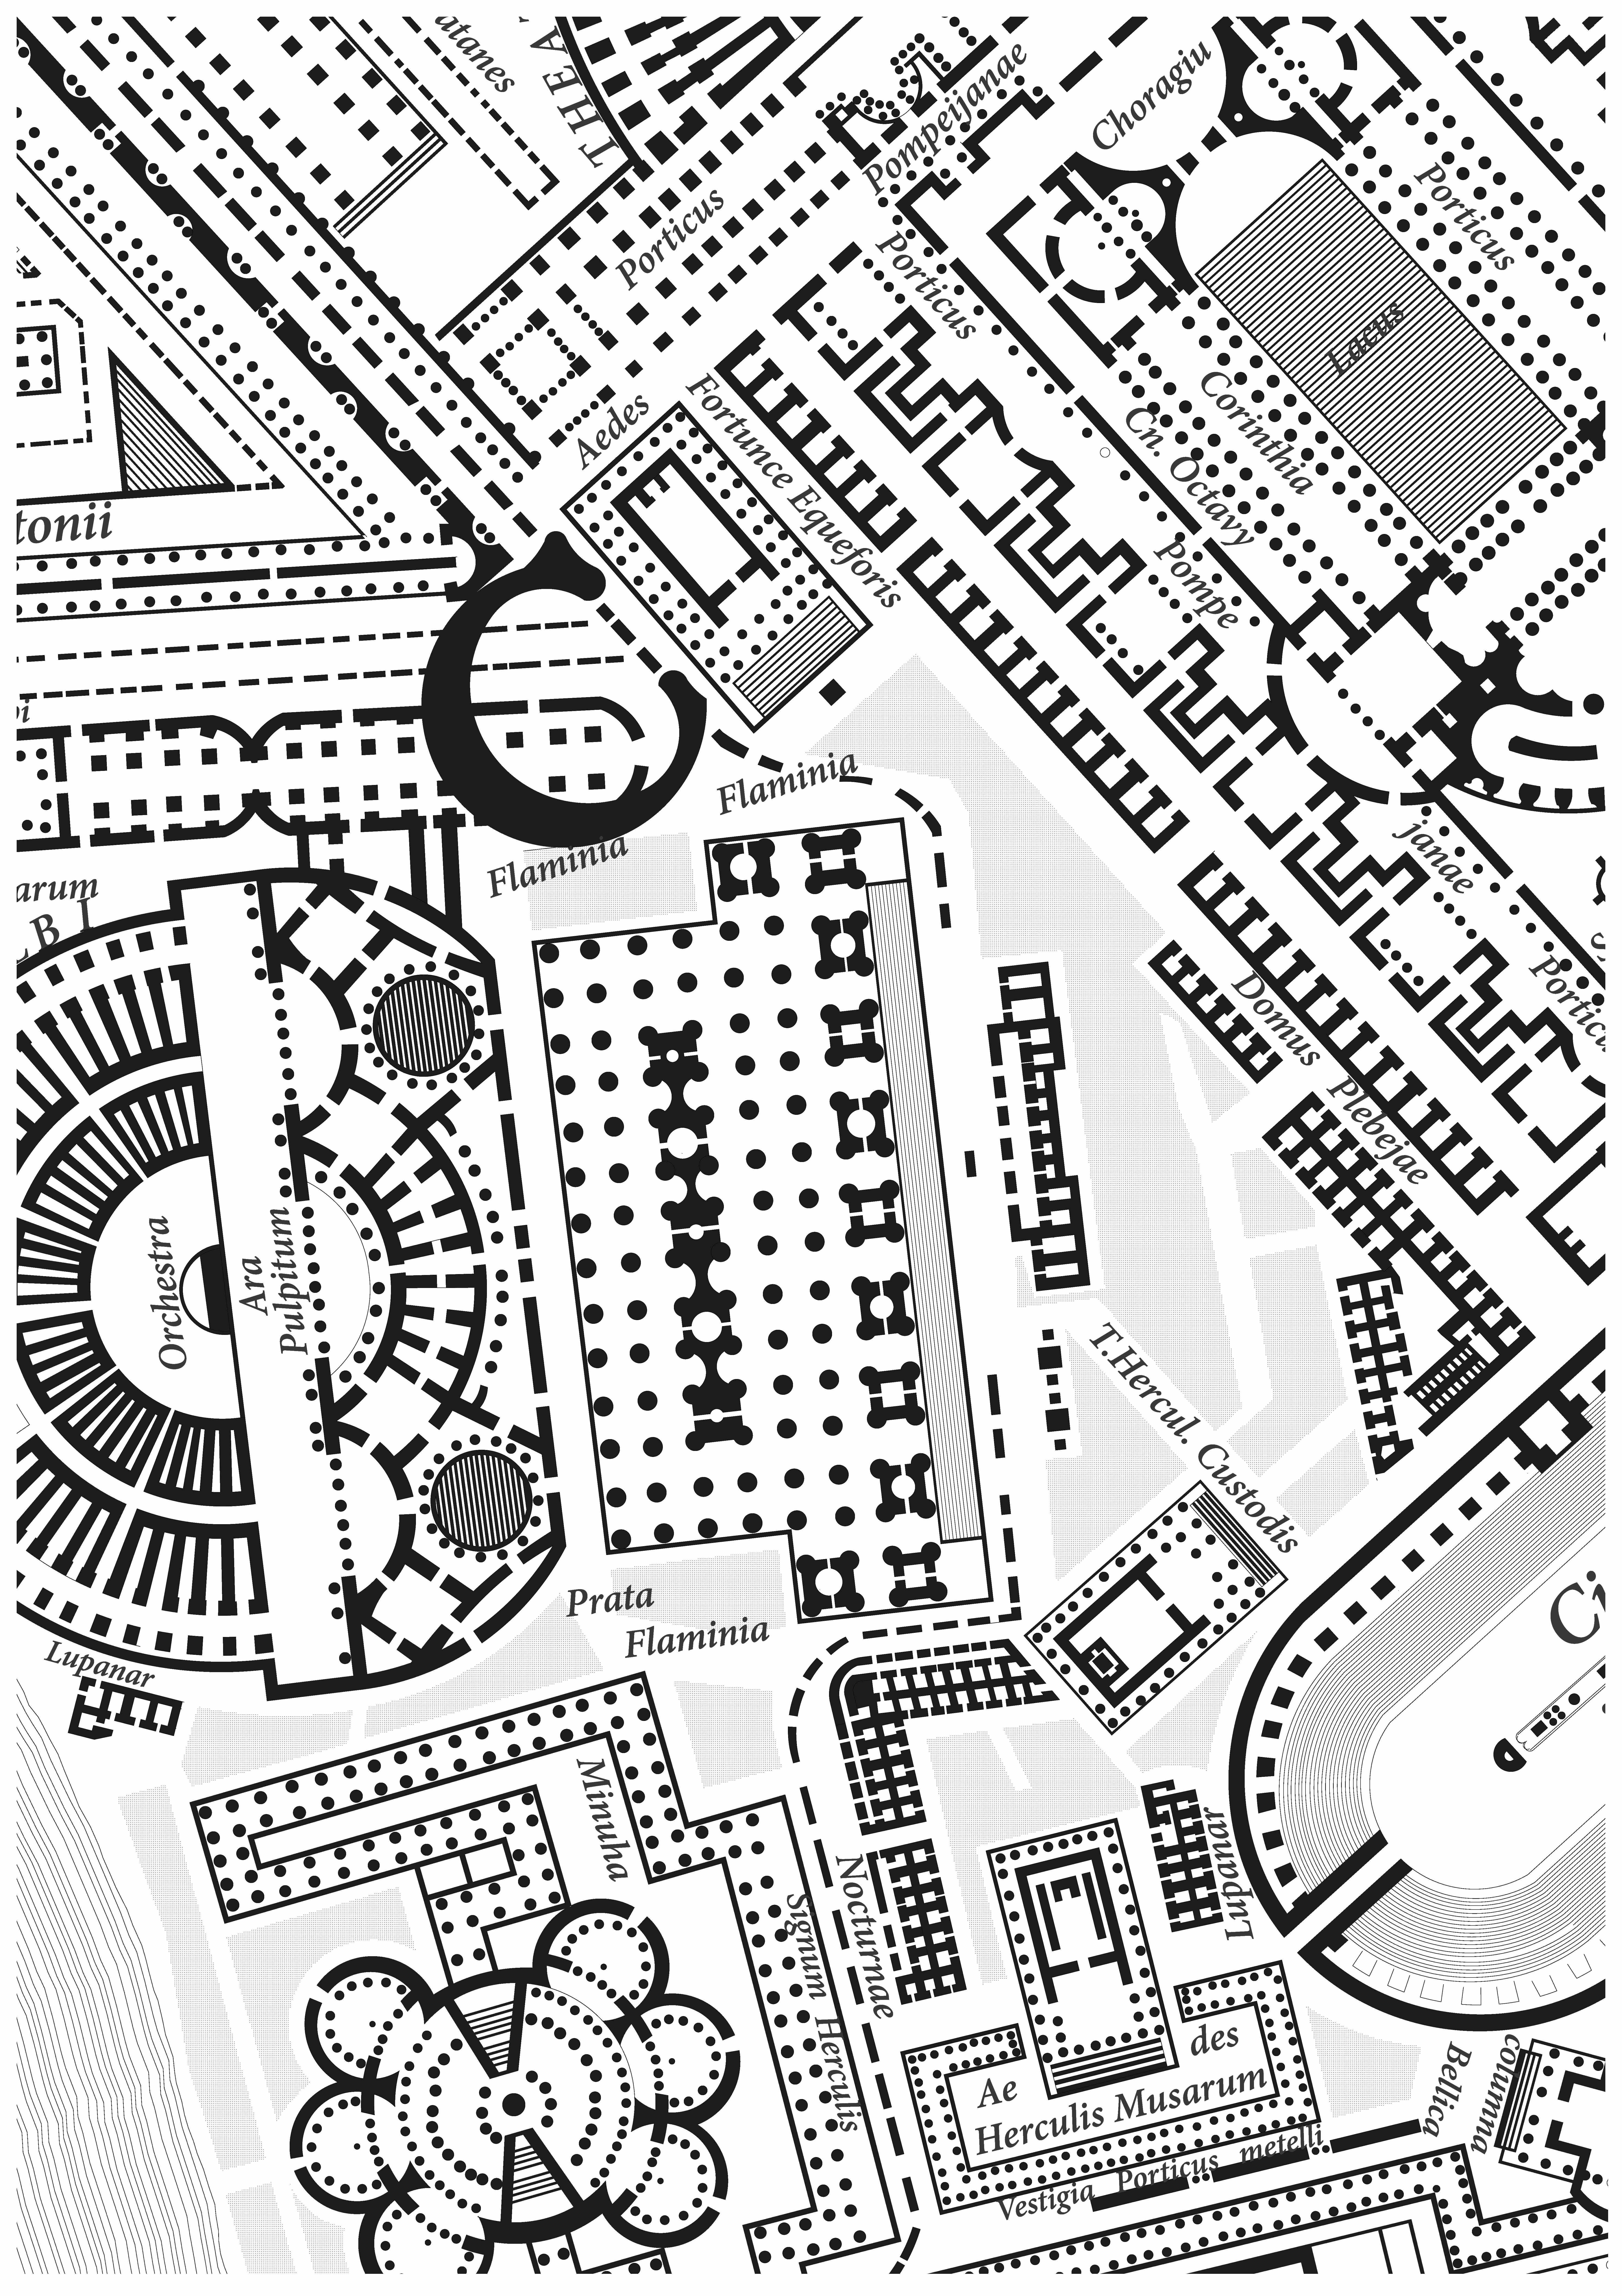 7016x9933 Eleven Canonical City Plans And A Note On The Conceptual Practice